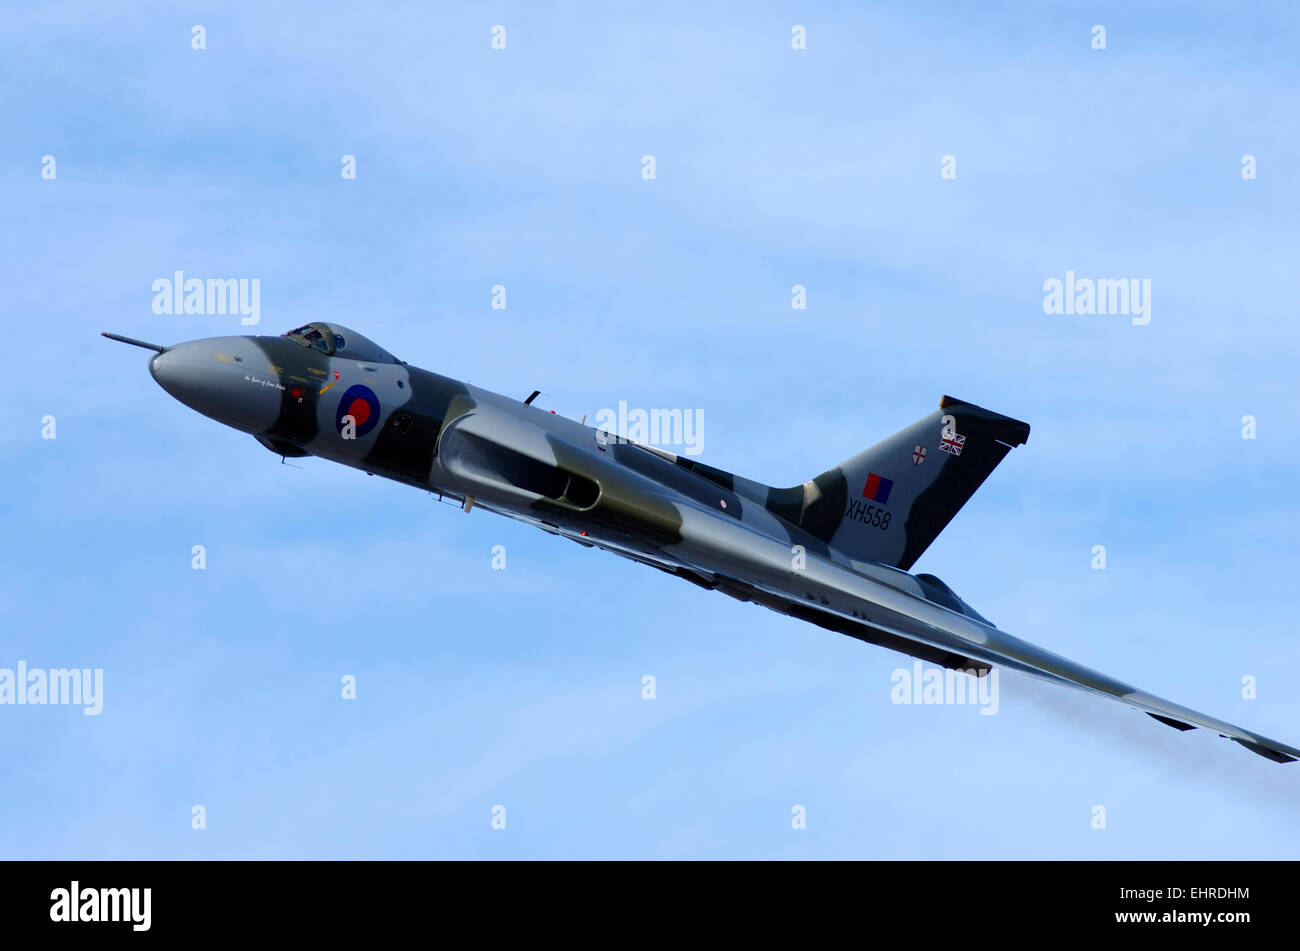 Avro Vulcan jet, Rhyl Air Display - Stock Image